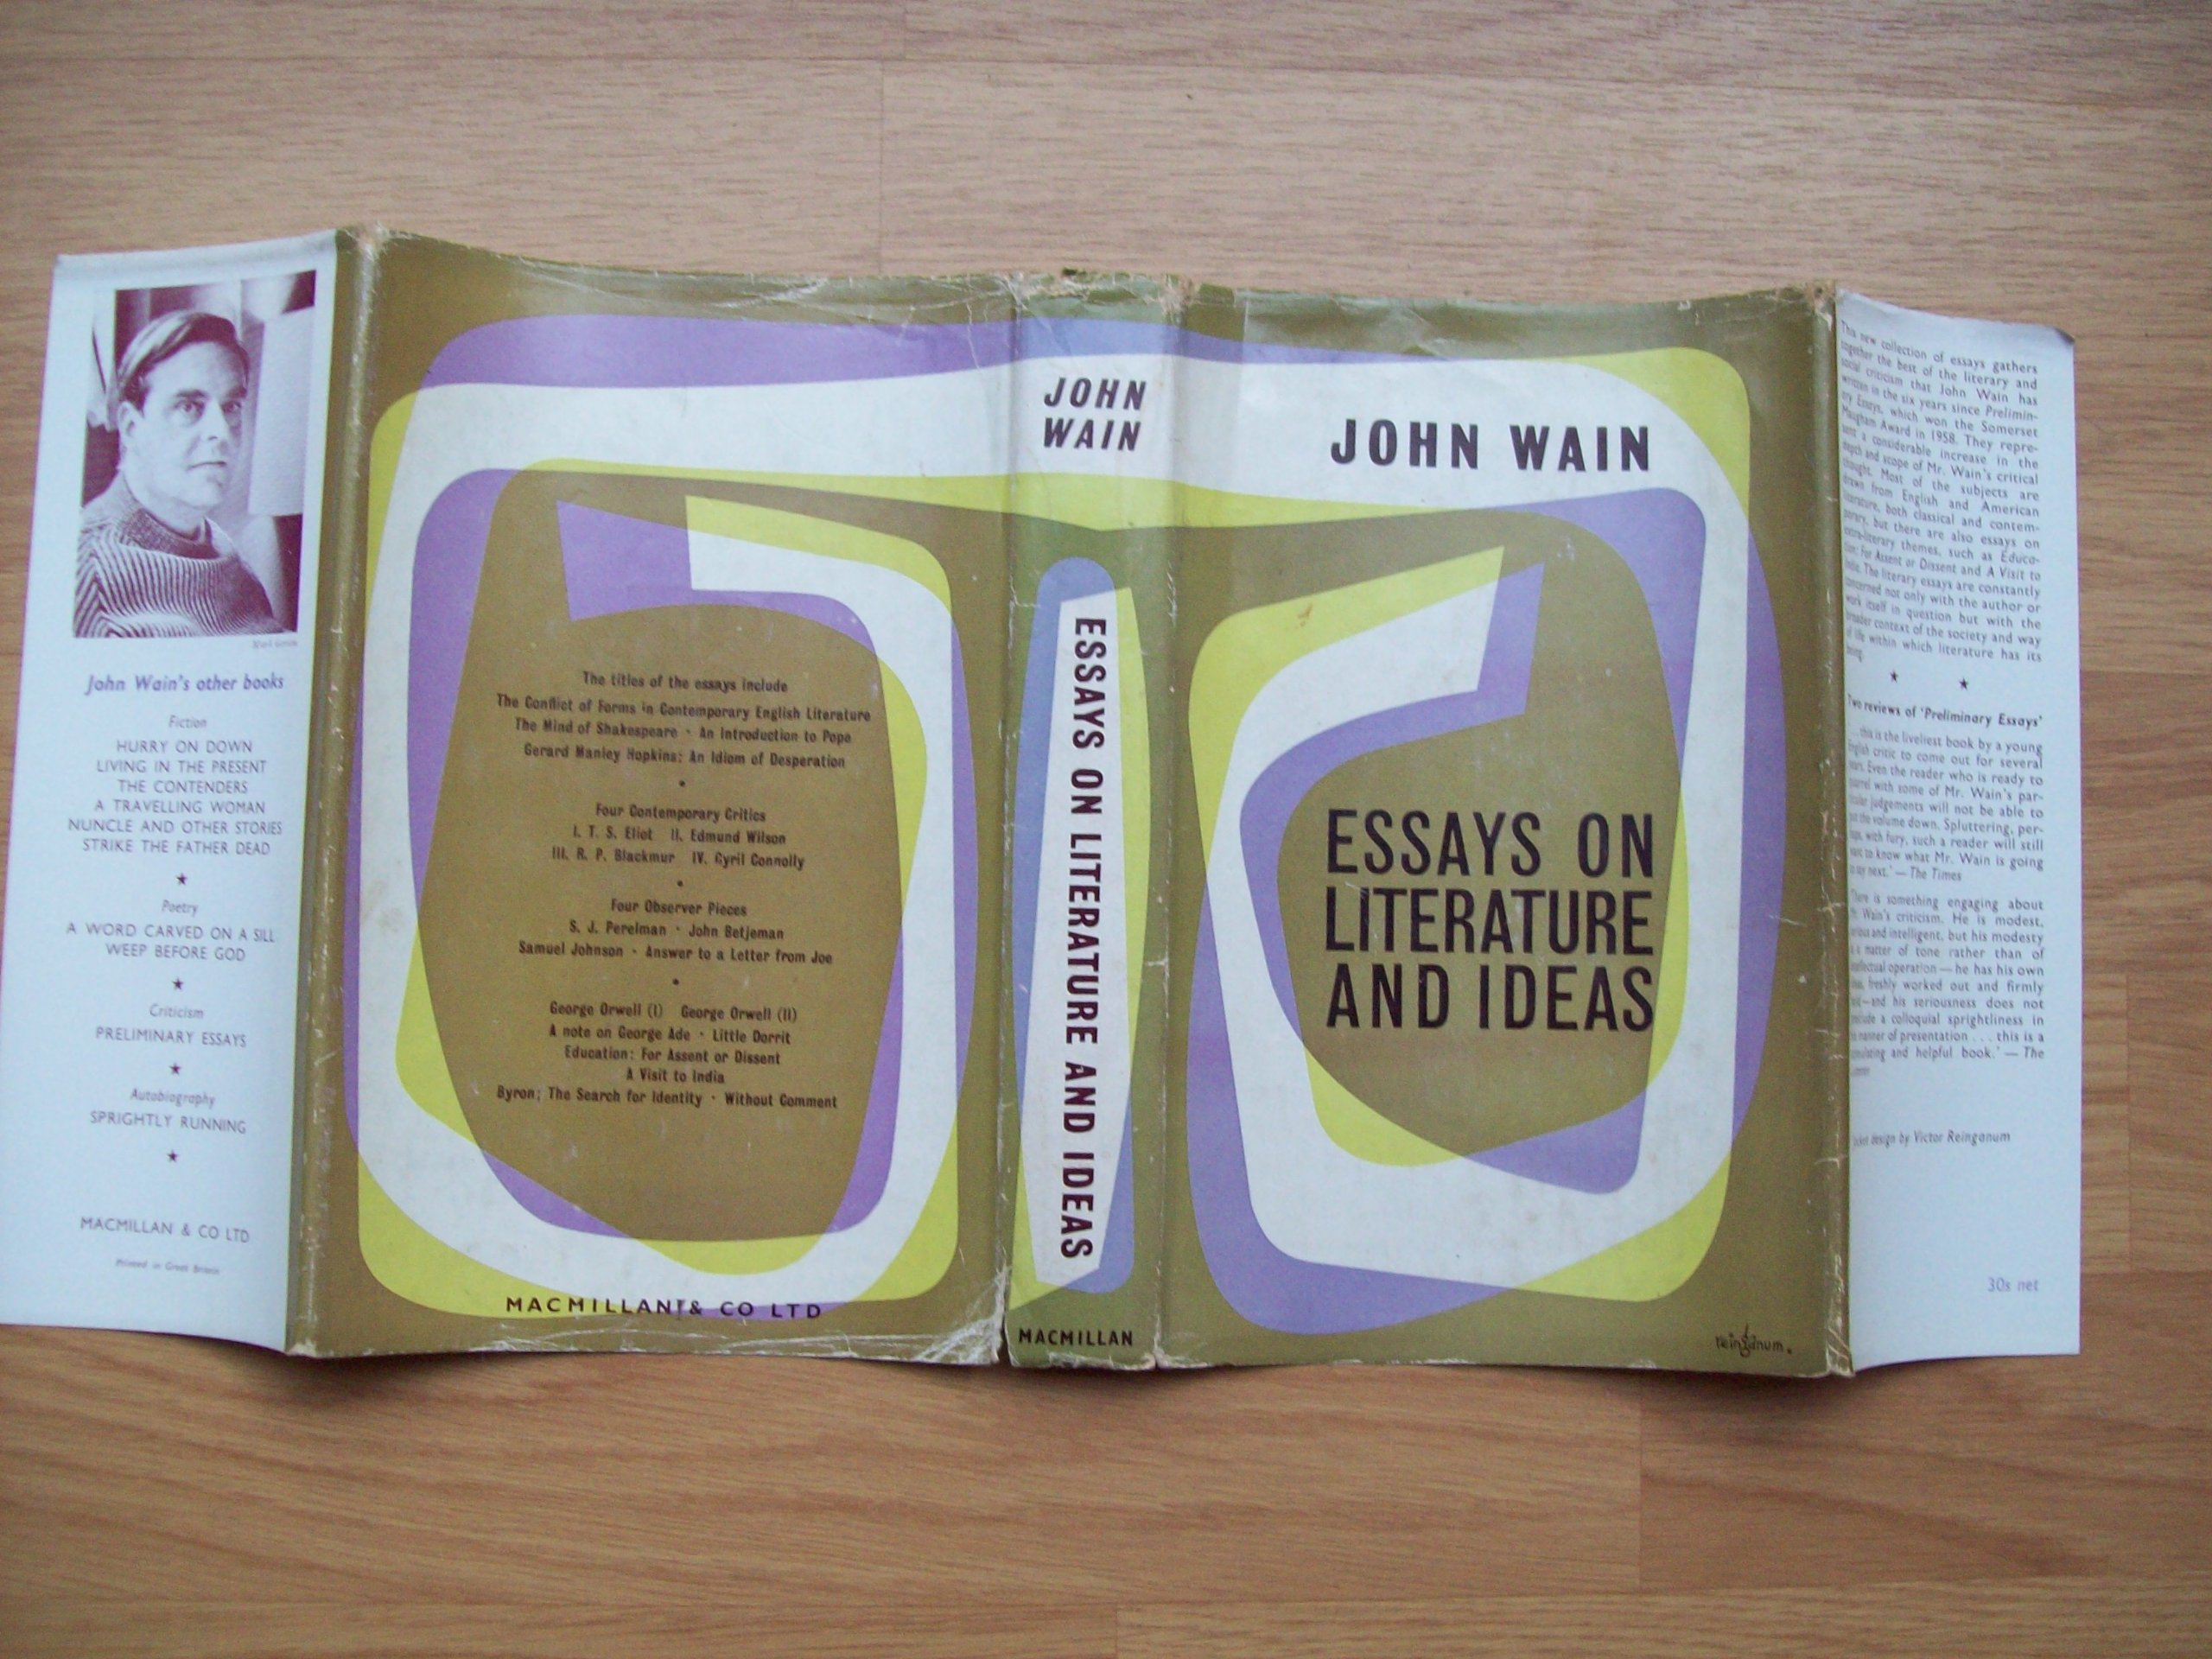 essays on literature and ideas amazon co uk john wain essays on literature and ideas amazon co uk john wain 9780333068656 books